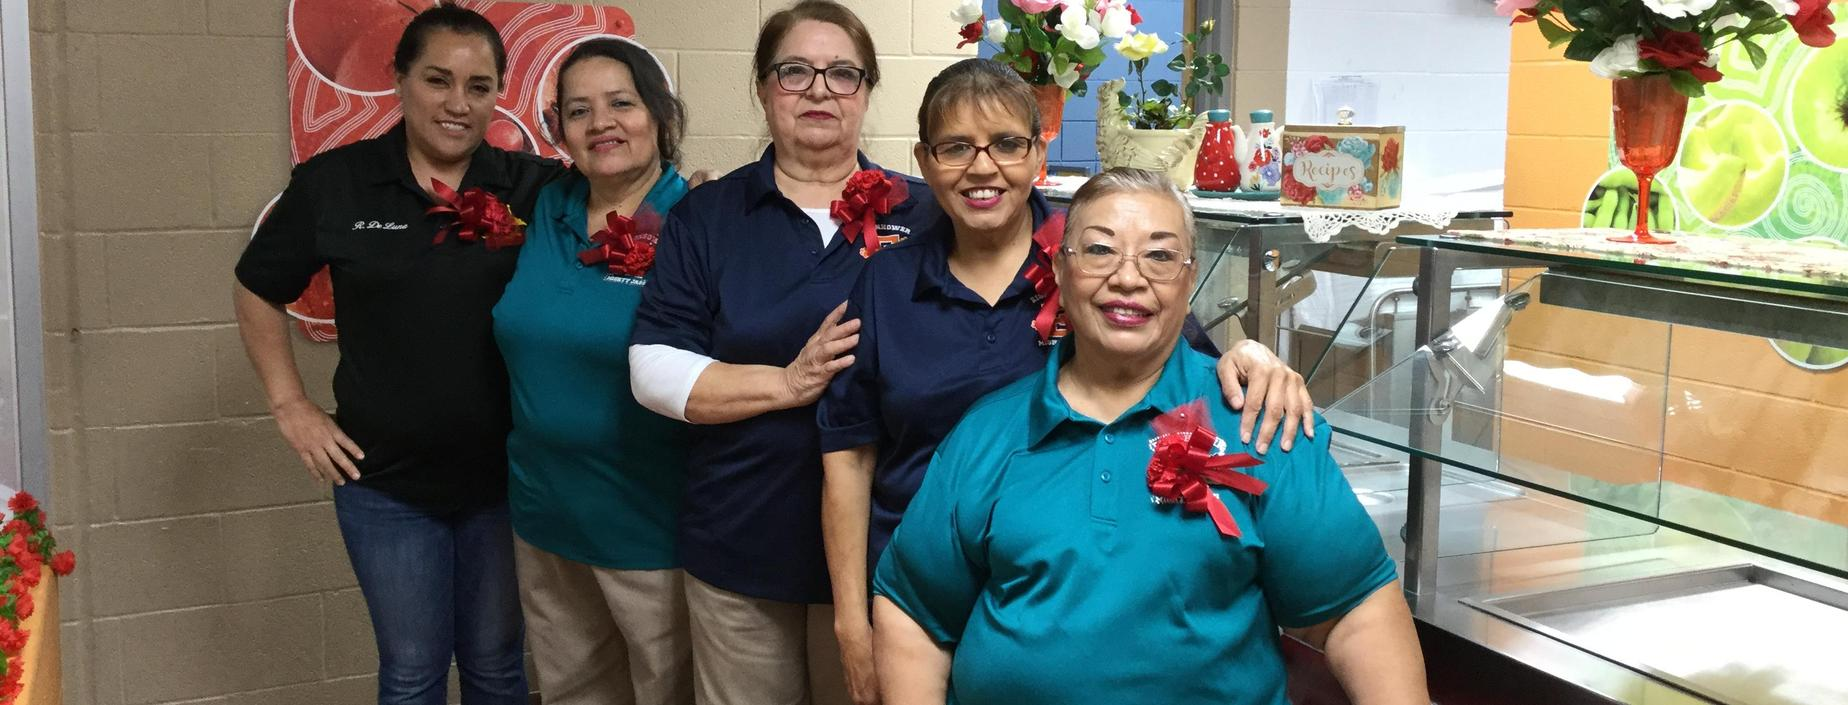 Image of Cafeteria Staff